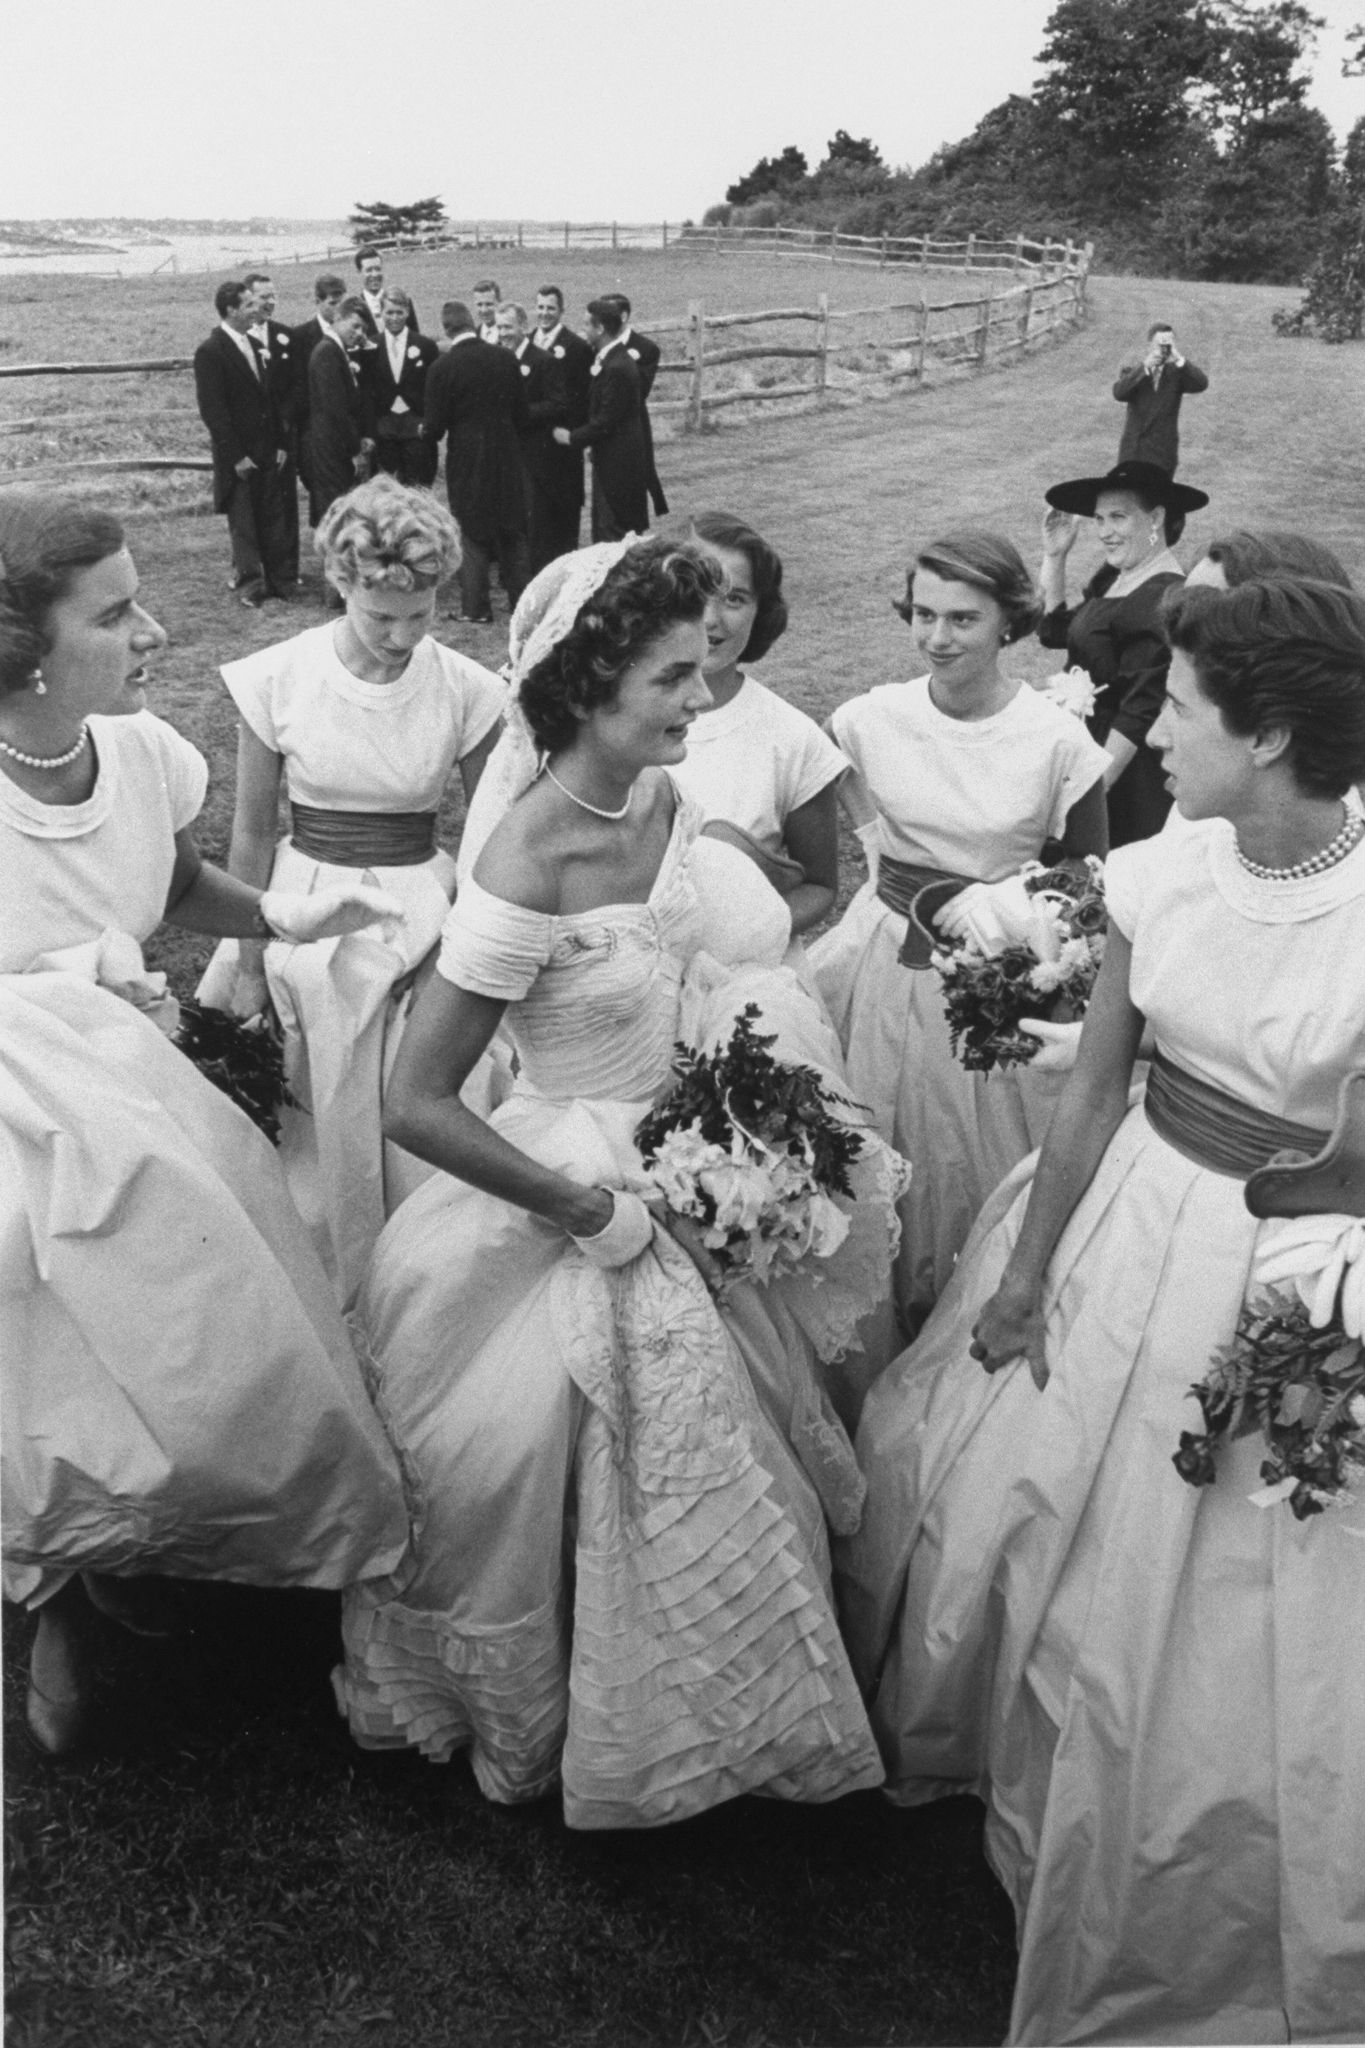 Jackie Kennedy with her bridesmaids on her wedding day